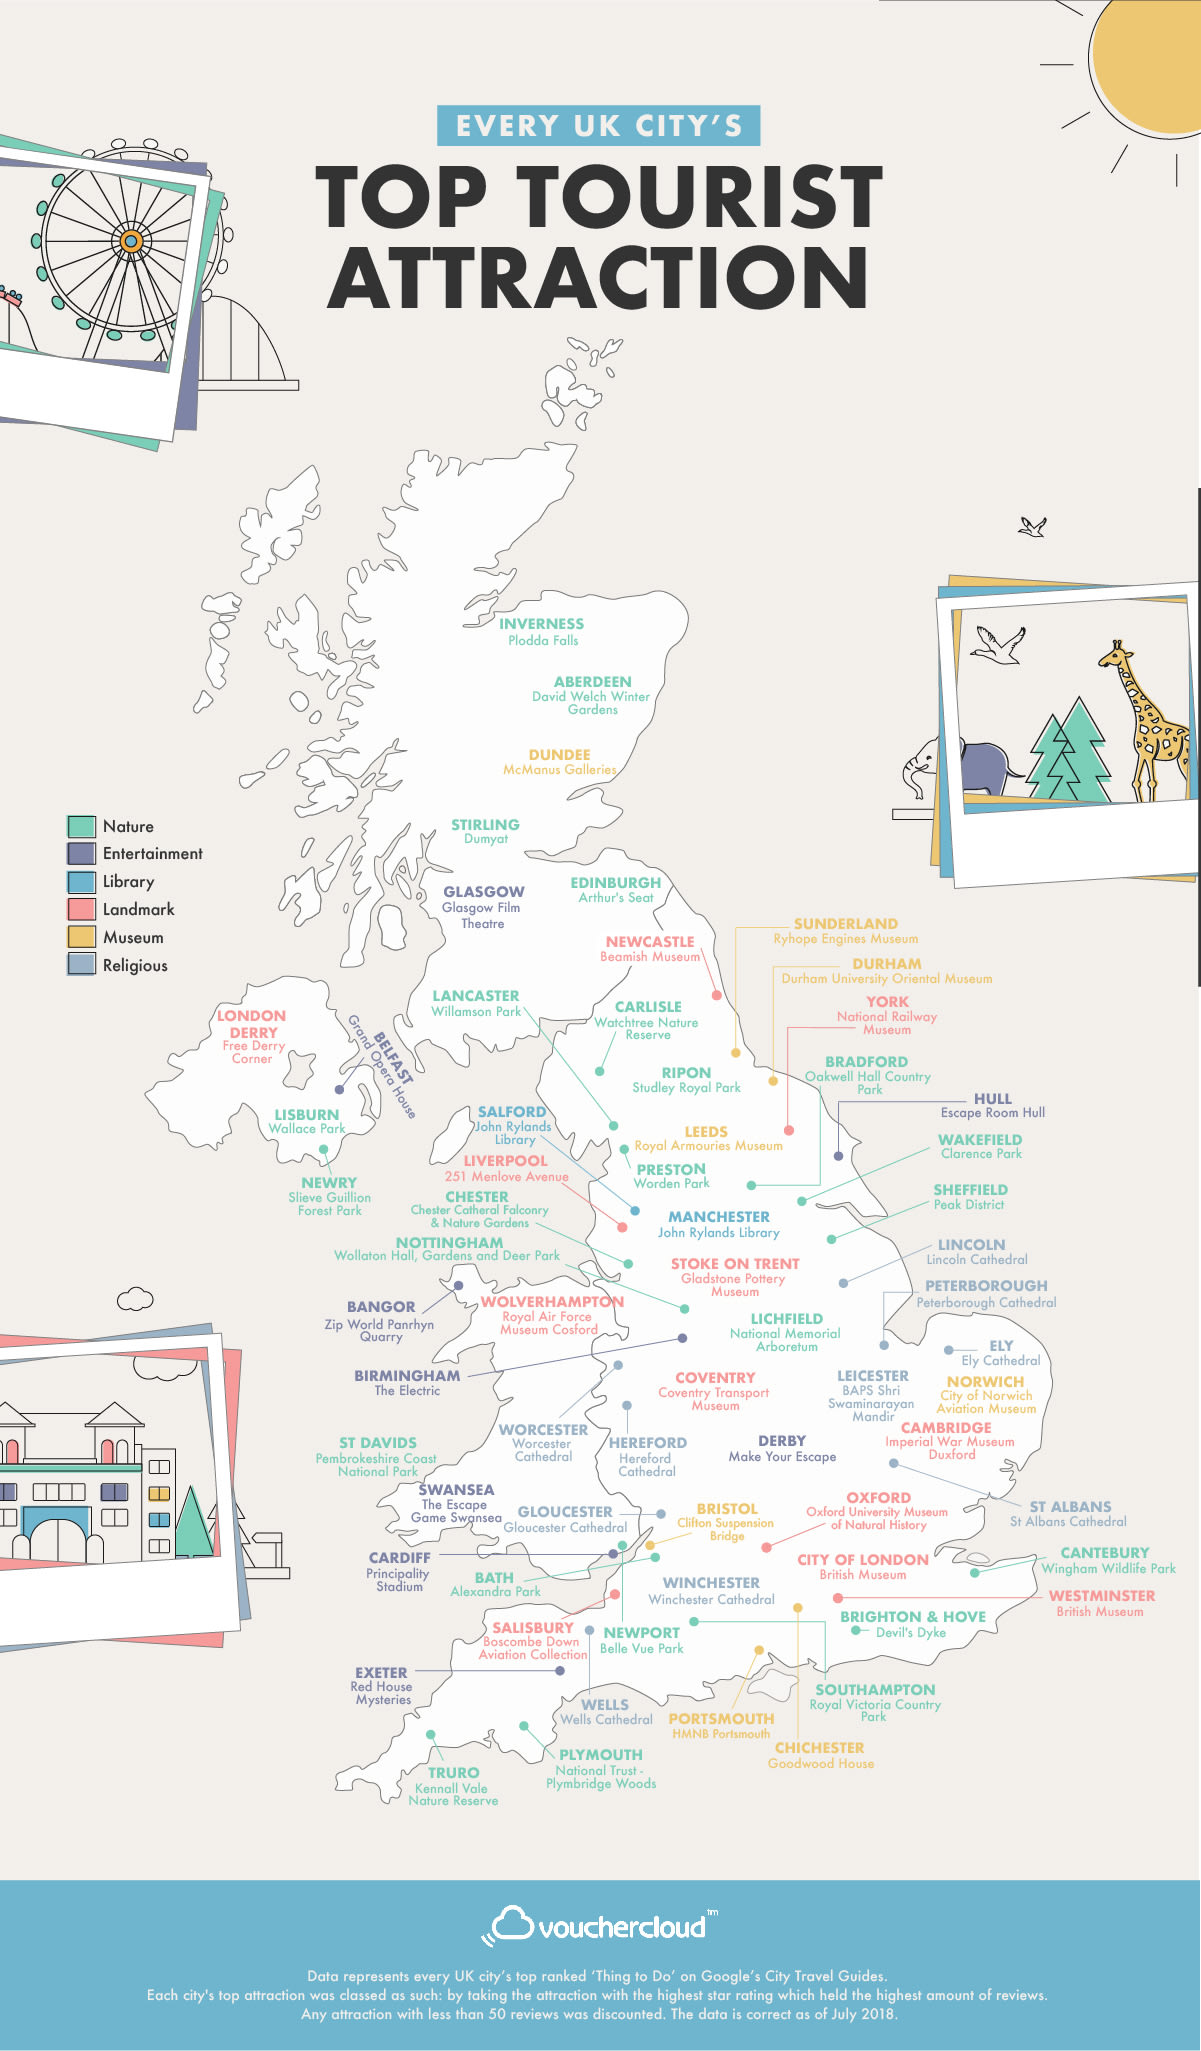 Every UK City's Top Tourist Attraction